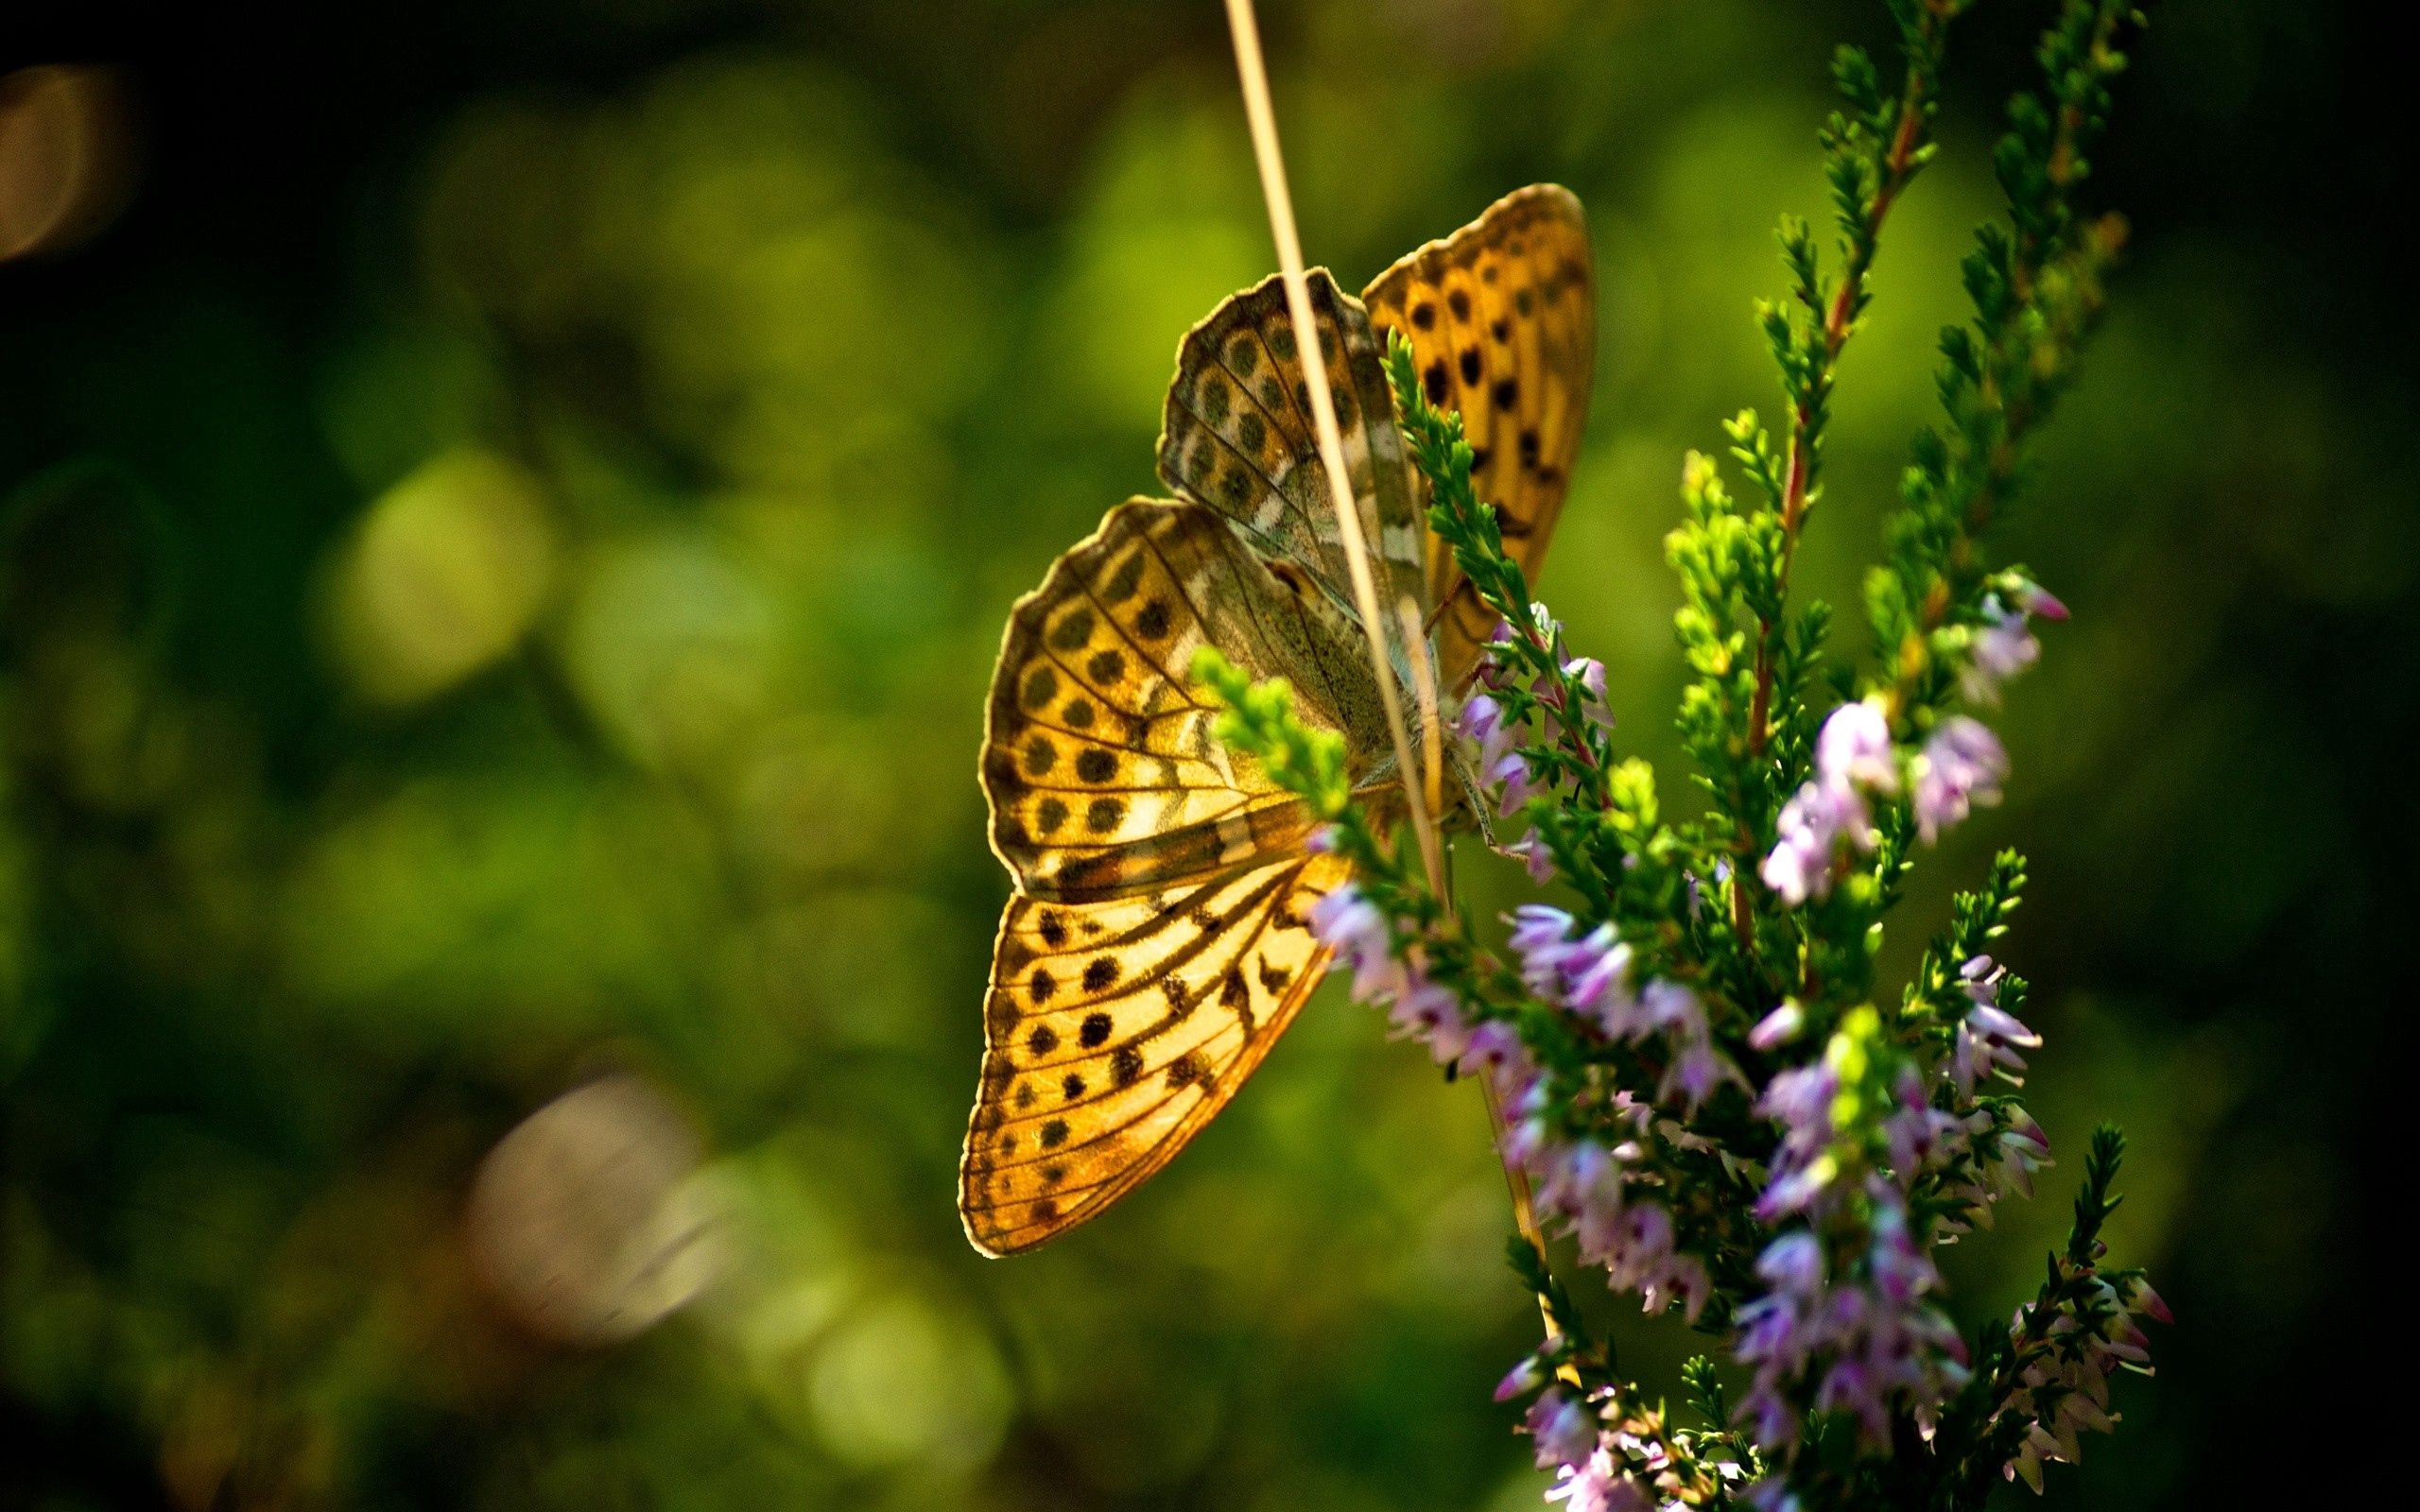 64643 Screensavers and Wallpapers Butterfly for phone. Download Grass, Plant, Macro, Flight, Butterfly pictures for free